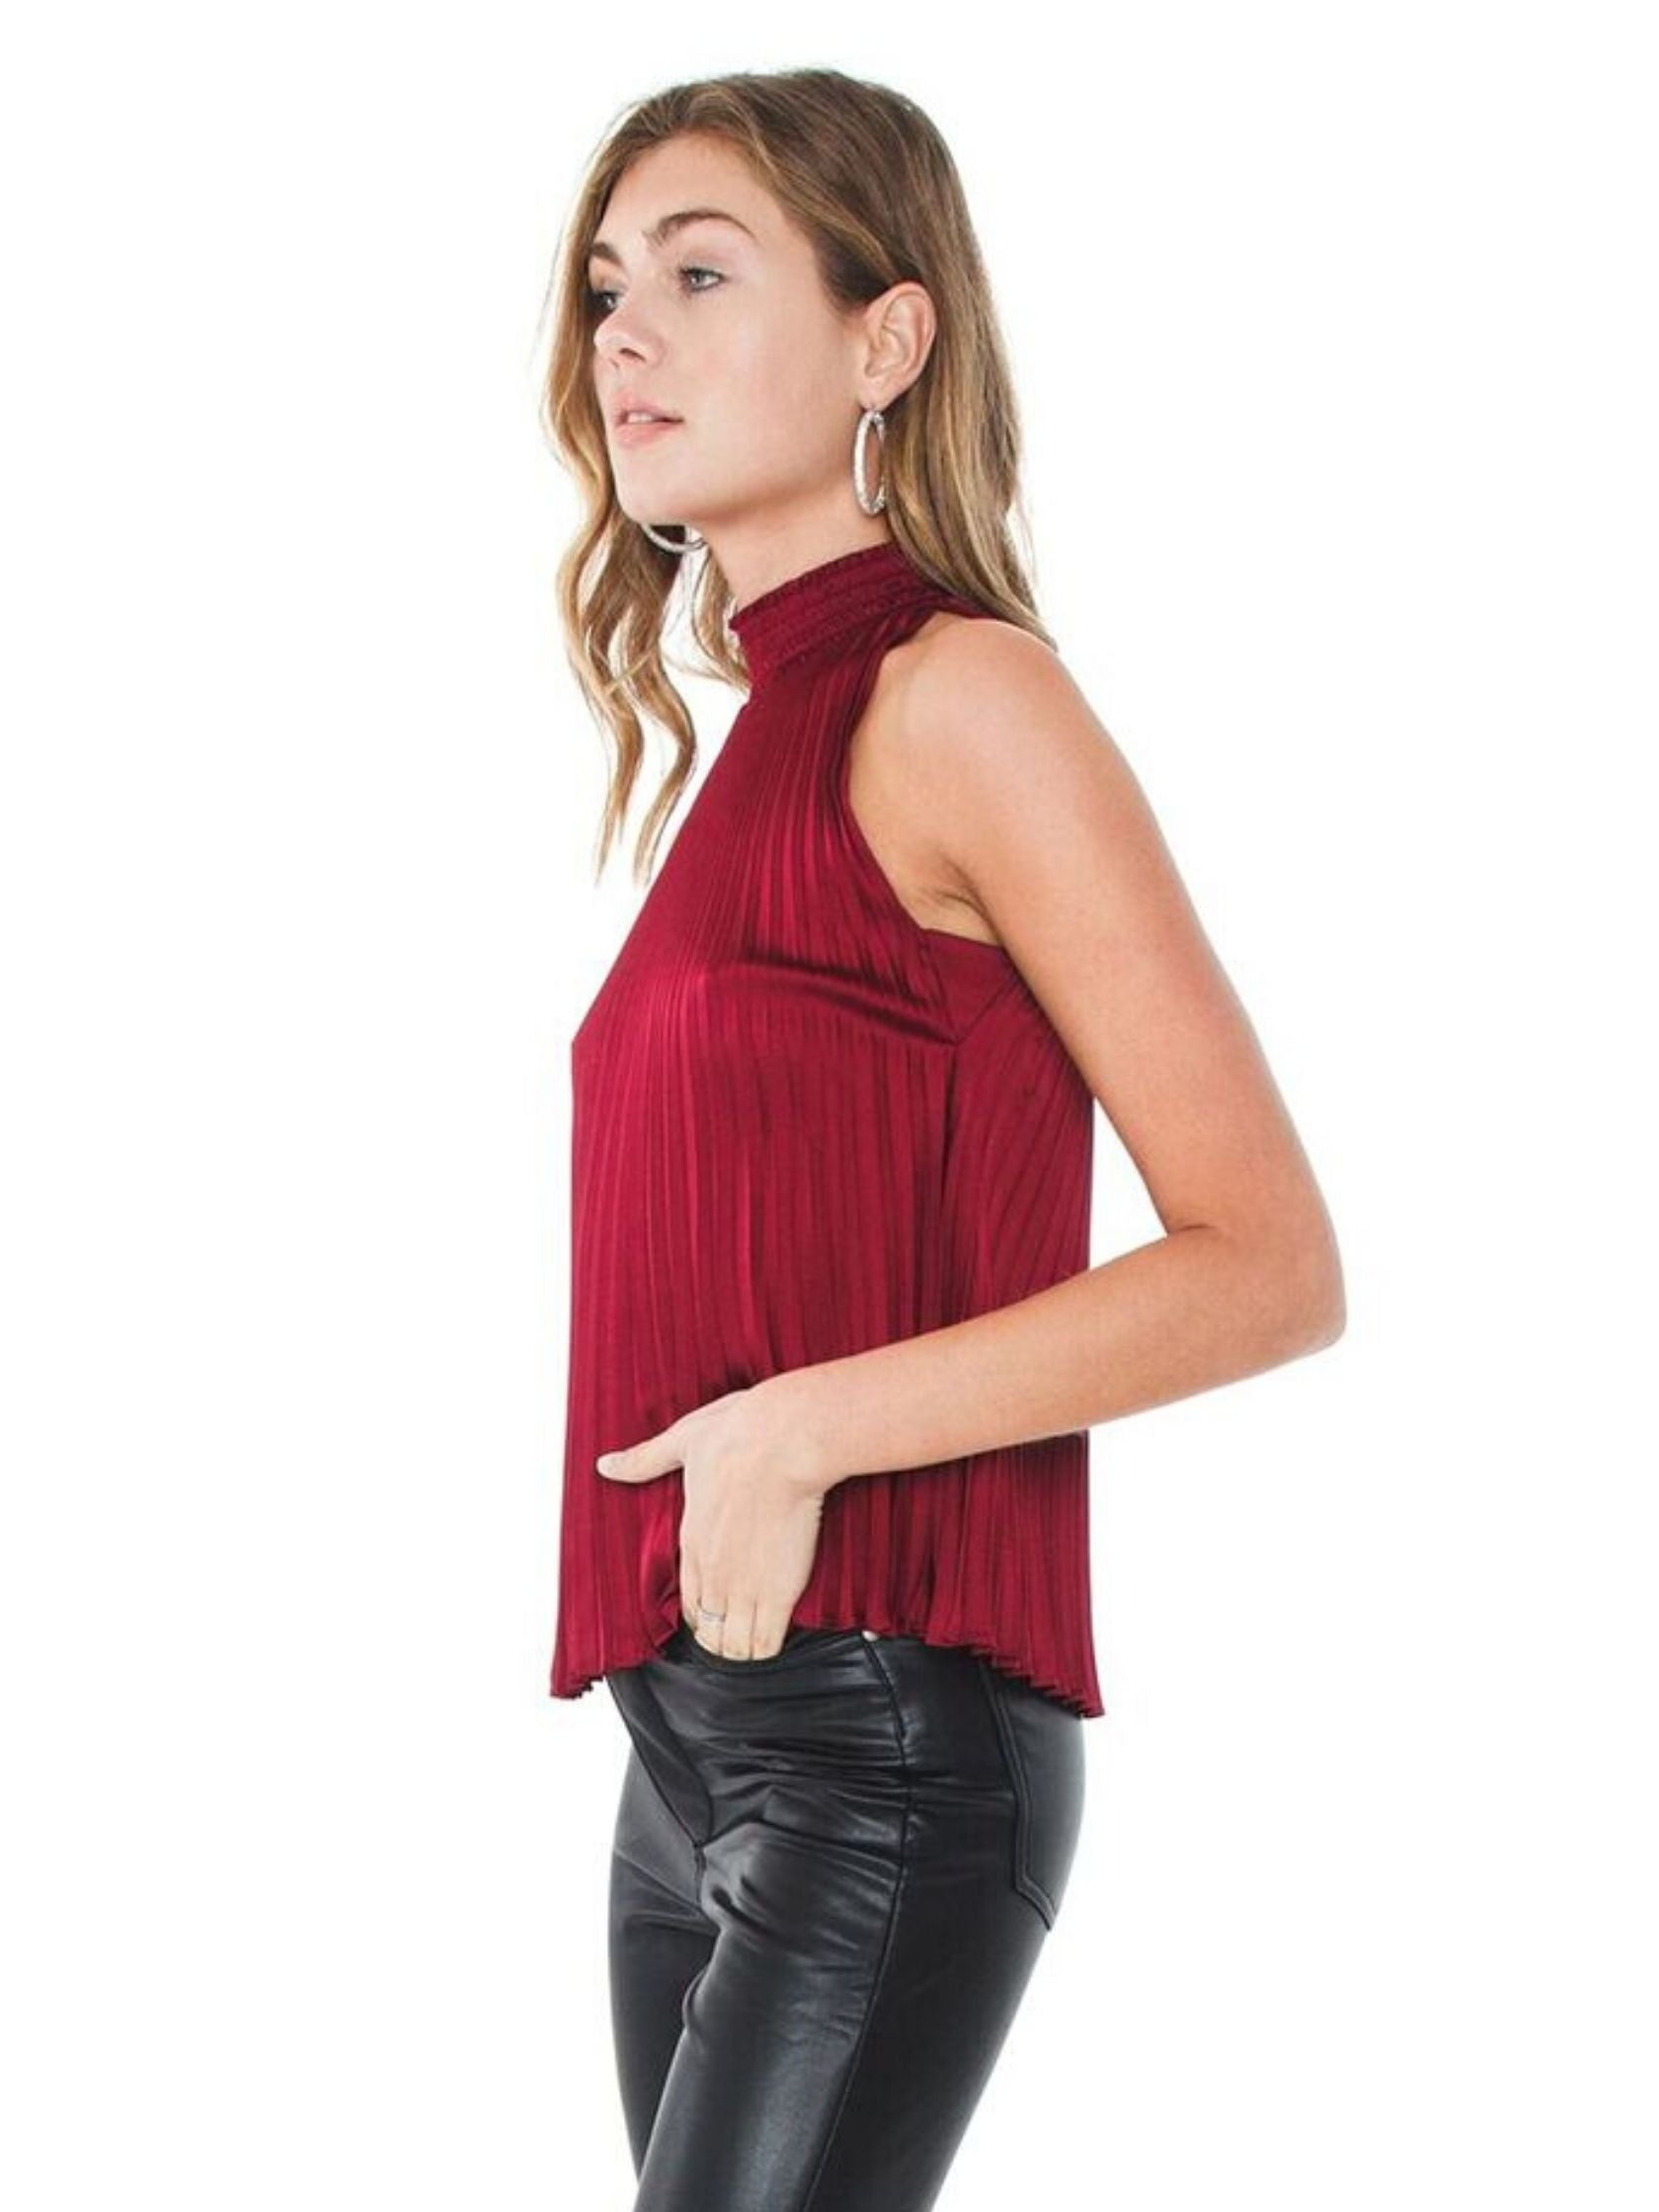 Women wearing a top rental from 1.STATE called Halter Neckline Pleated Charmeuse Blouse